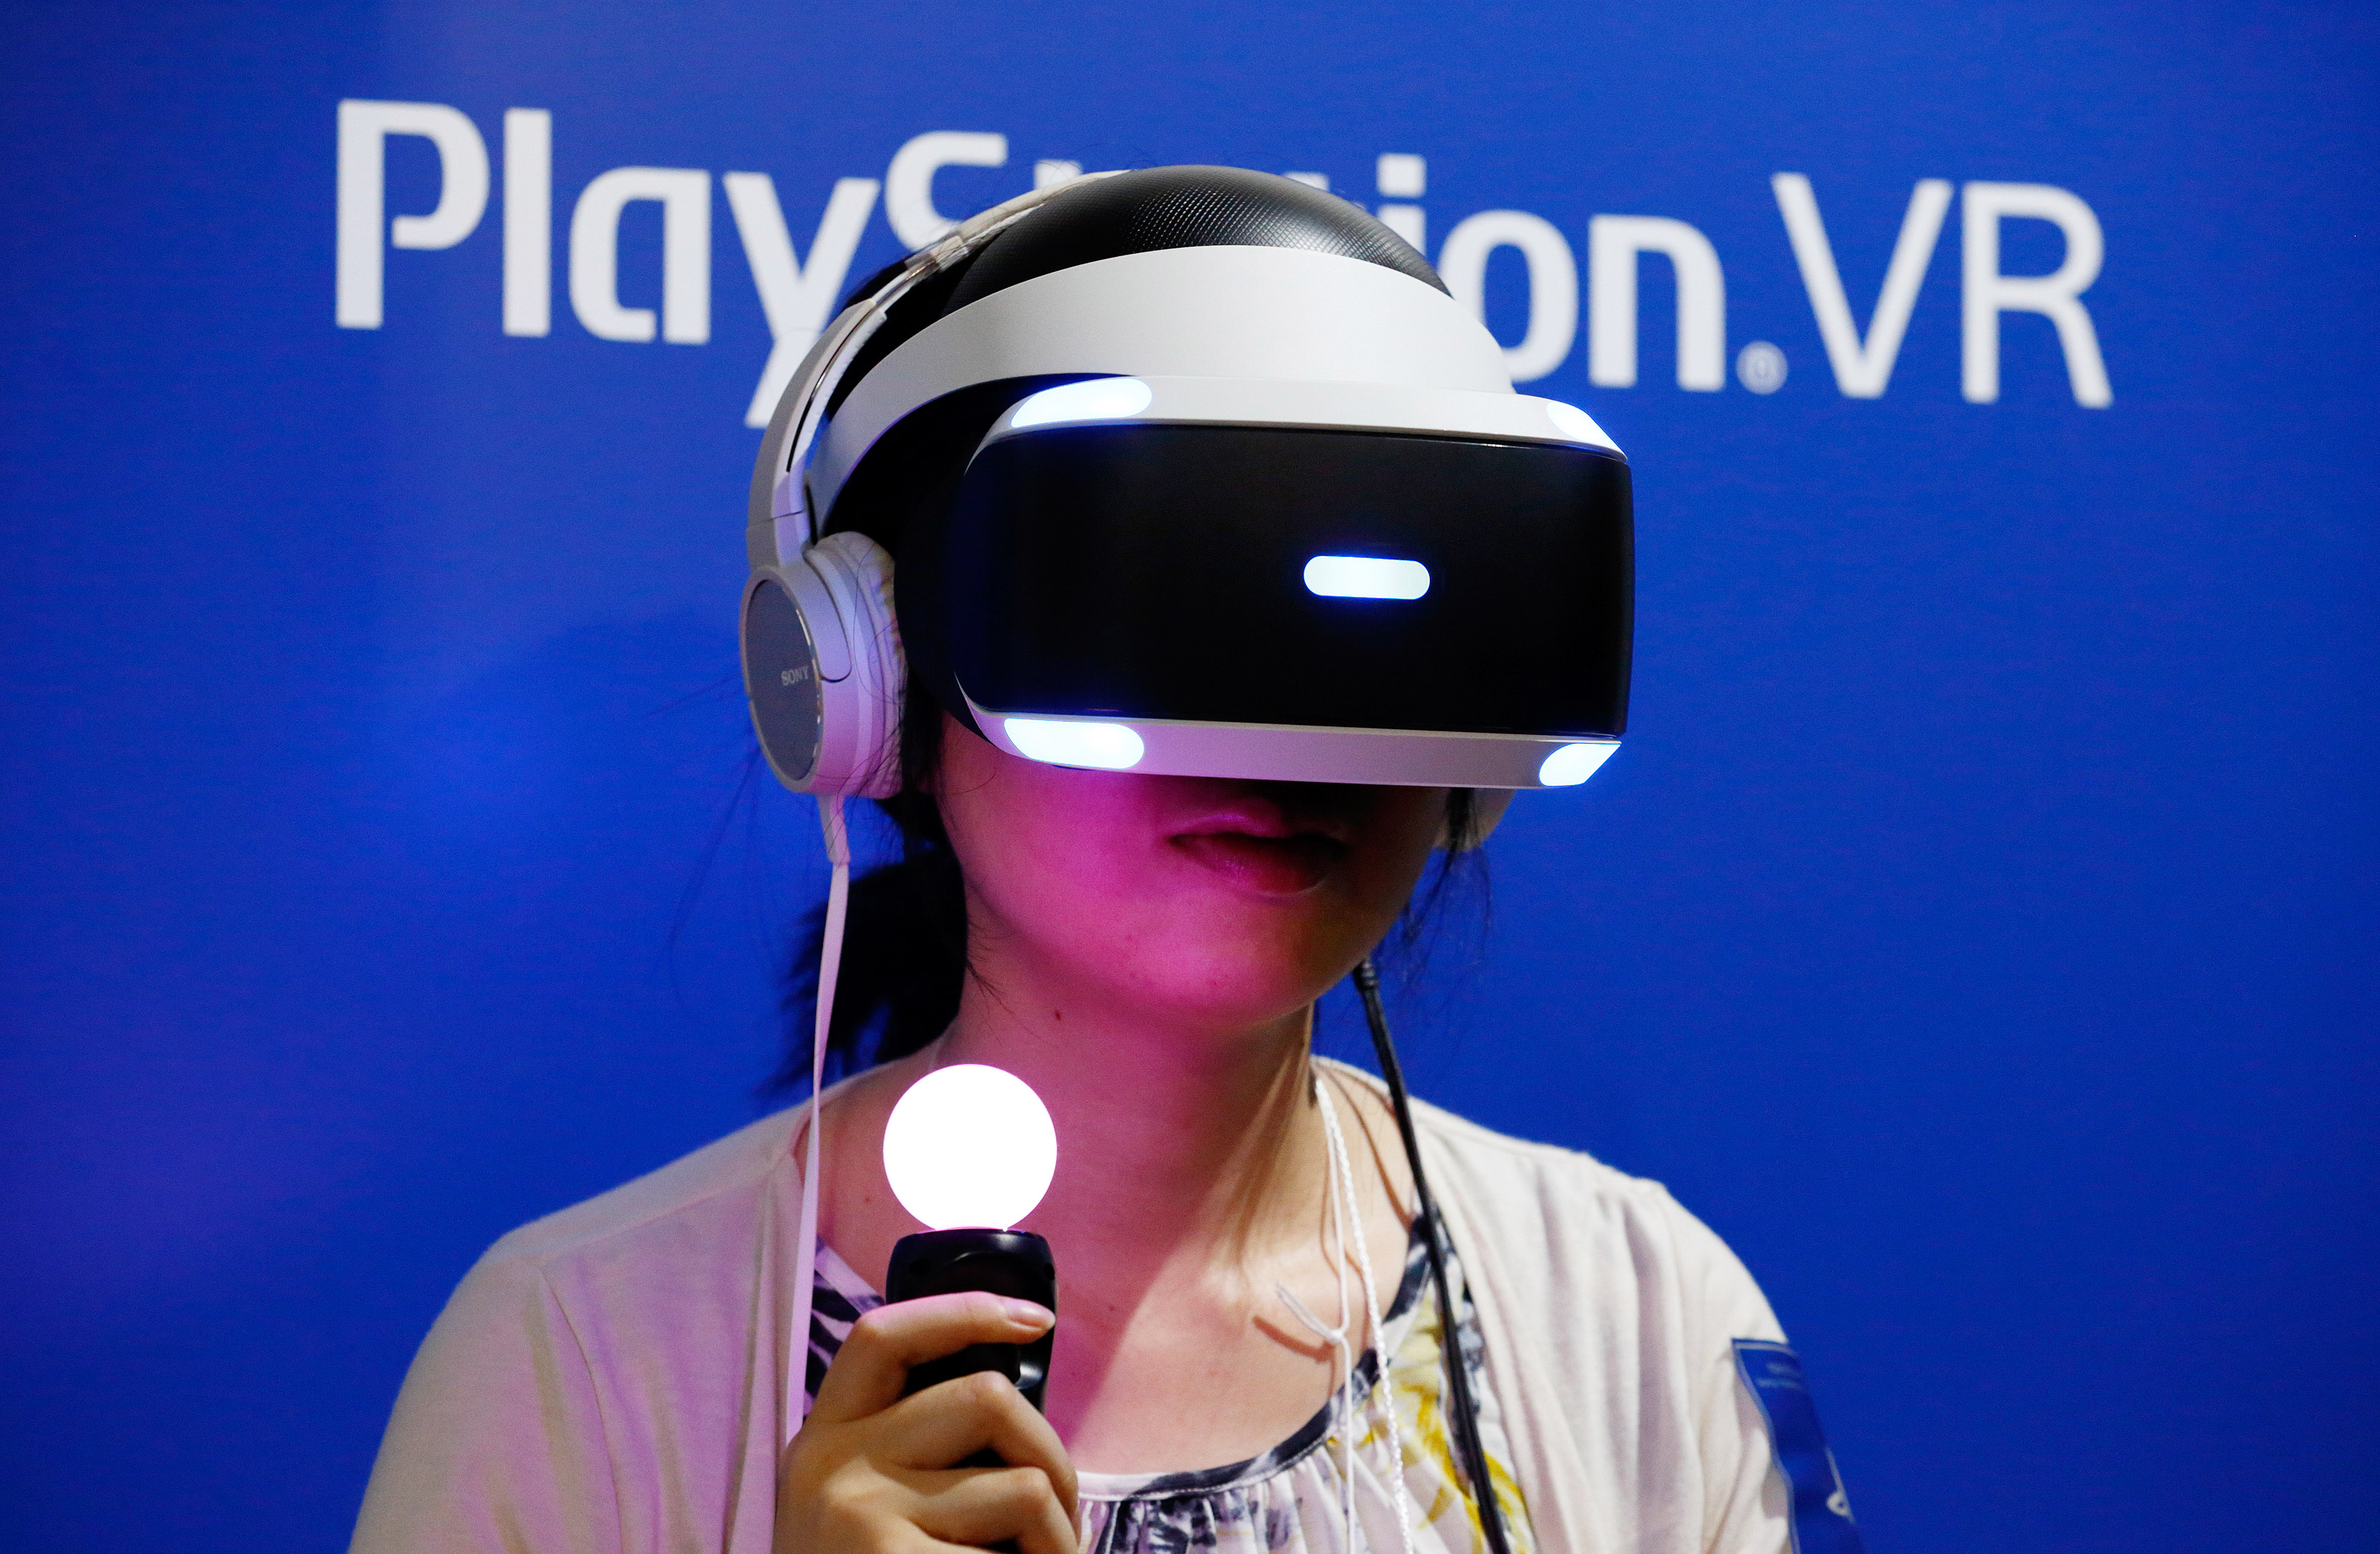 A visitor wearing a Sony Interactive Entertainment Inc. PlayStation VR headset plays a video game at the Tokyo Game Show 2016 on September 15, 2016 in Chiba, Japan.